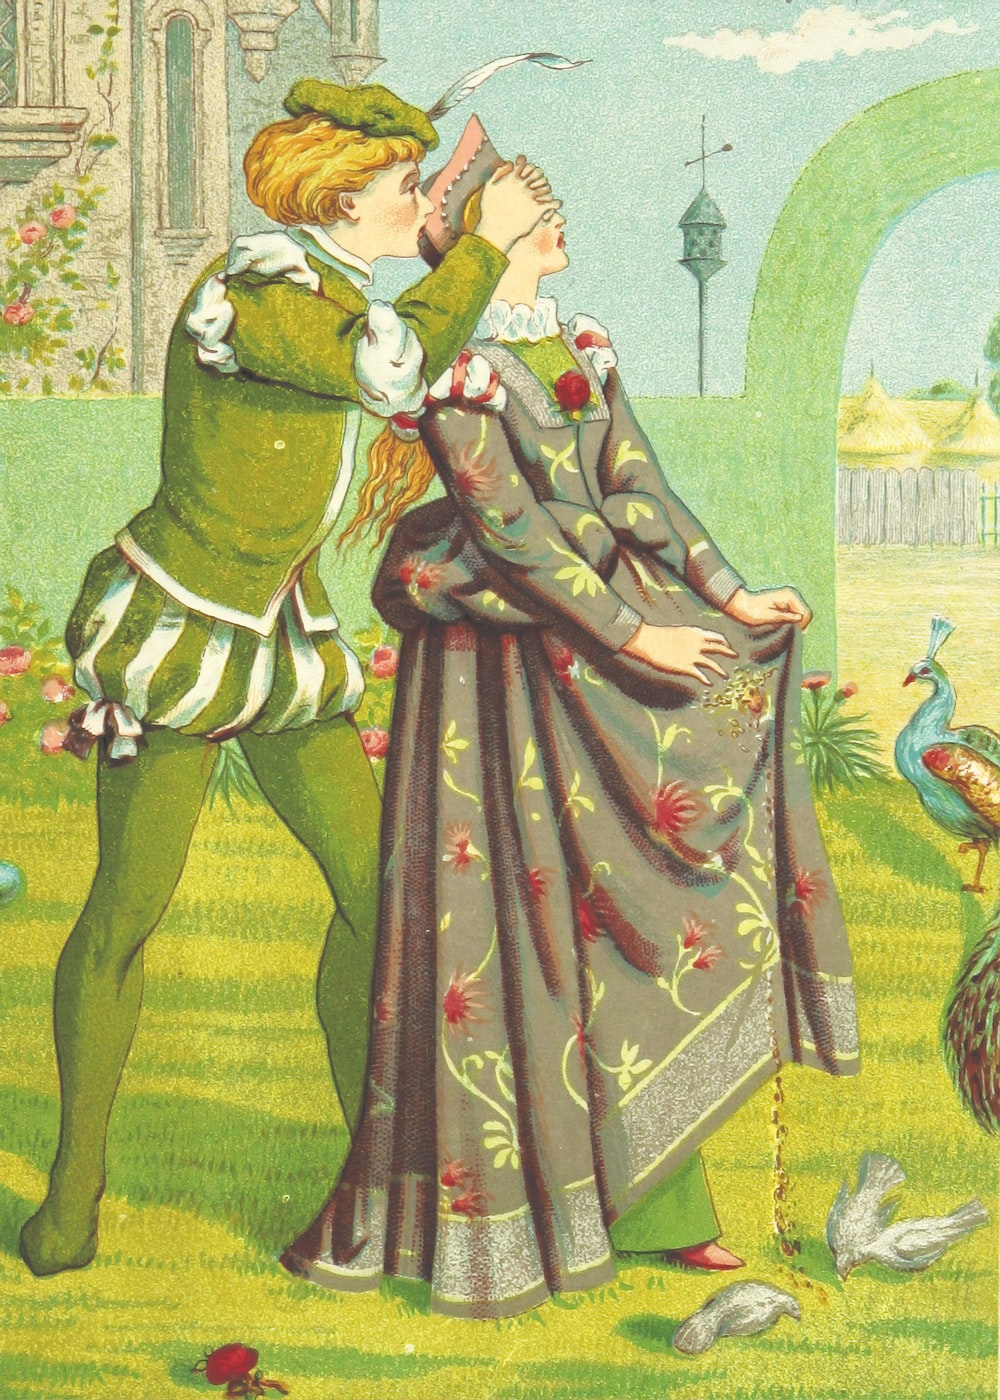 man in green and brown dress holding a woman in red dress painting